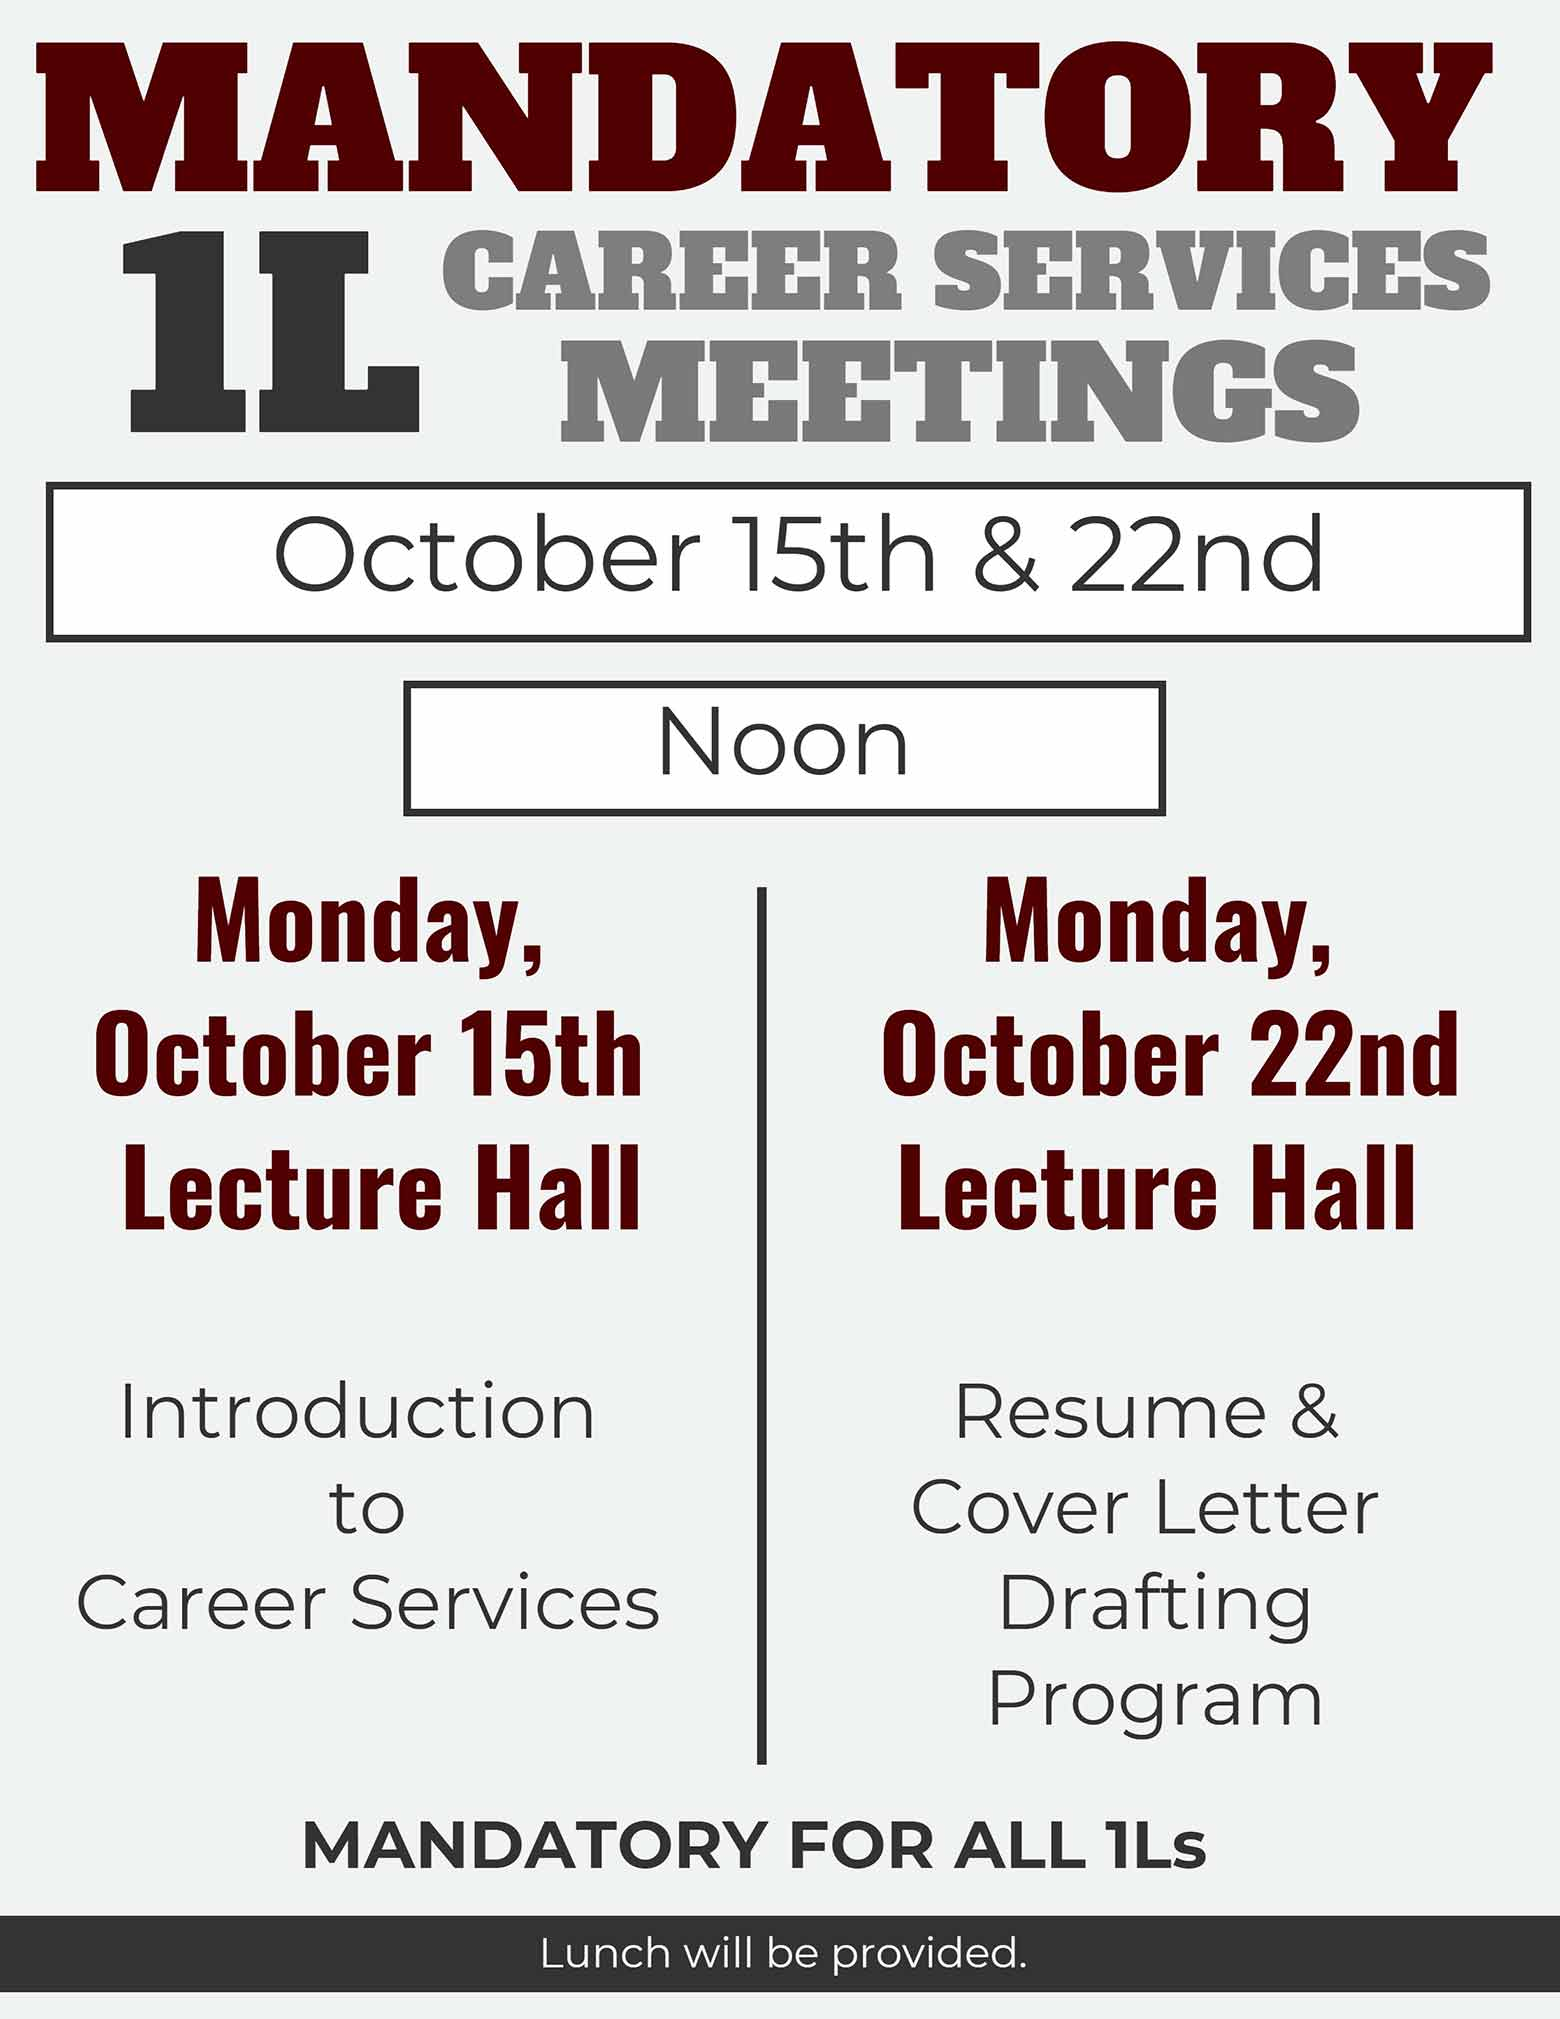 Mandatory 1L Career Services Meetings 2018